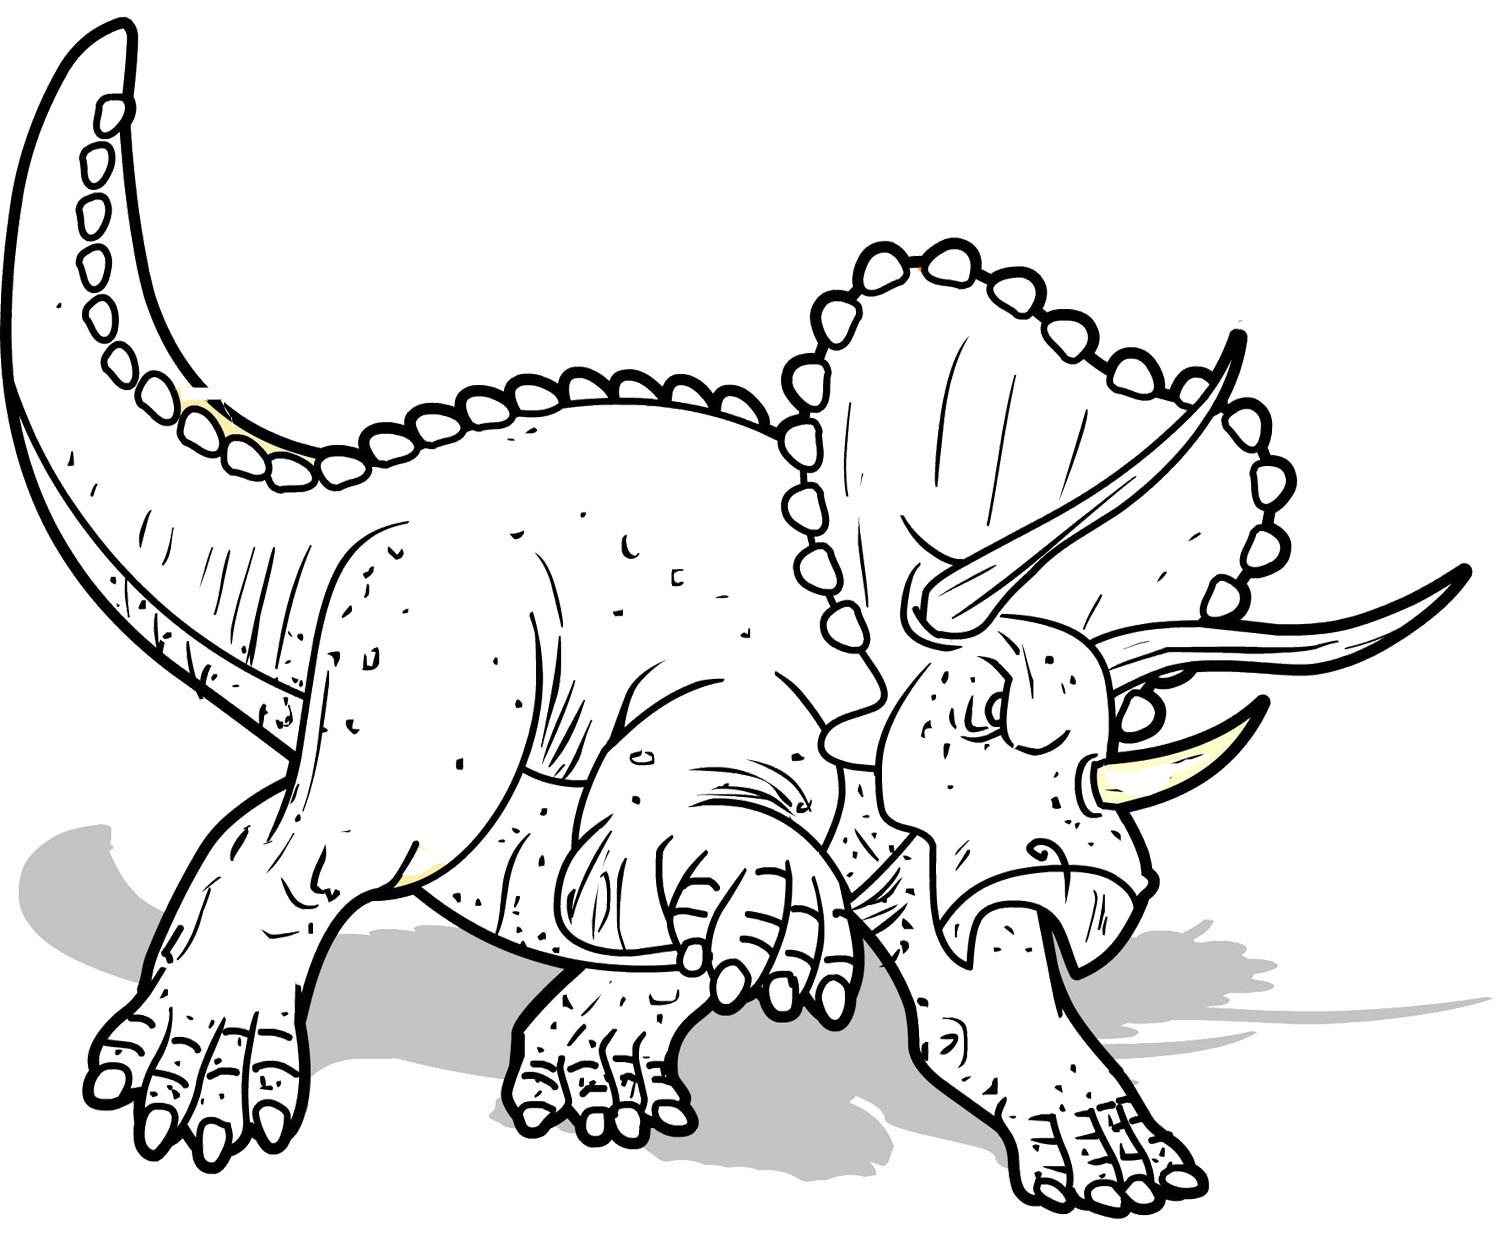 T Rex Dinosaur Coloring Pages at GetColorings.com | Free ...